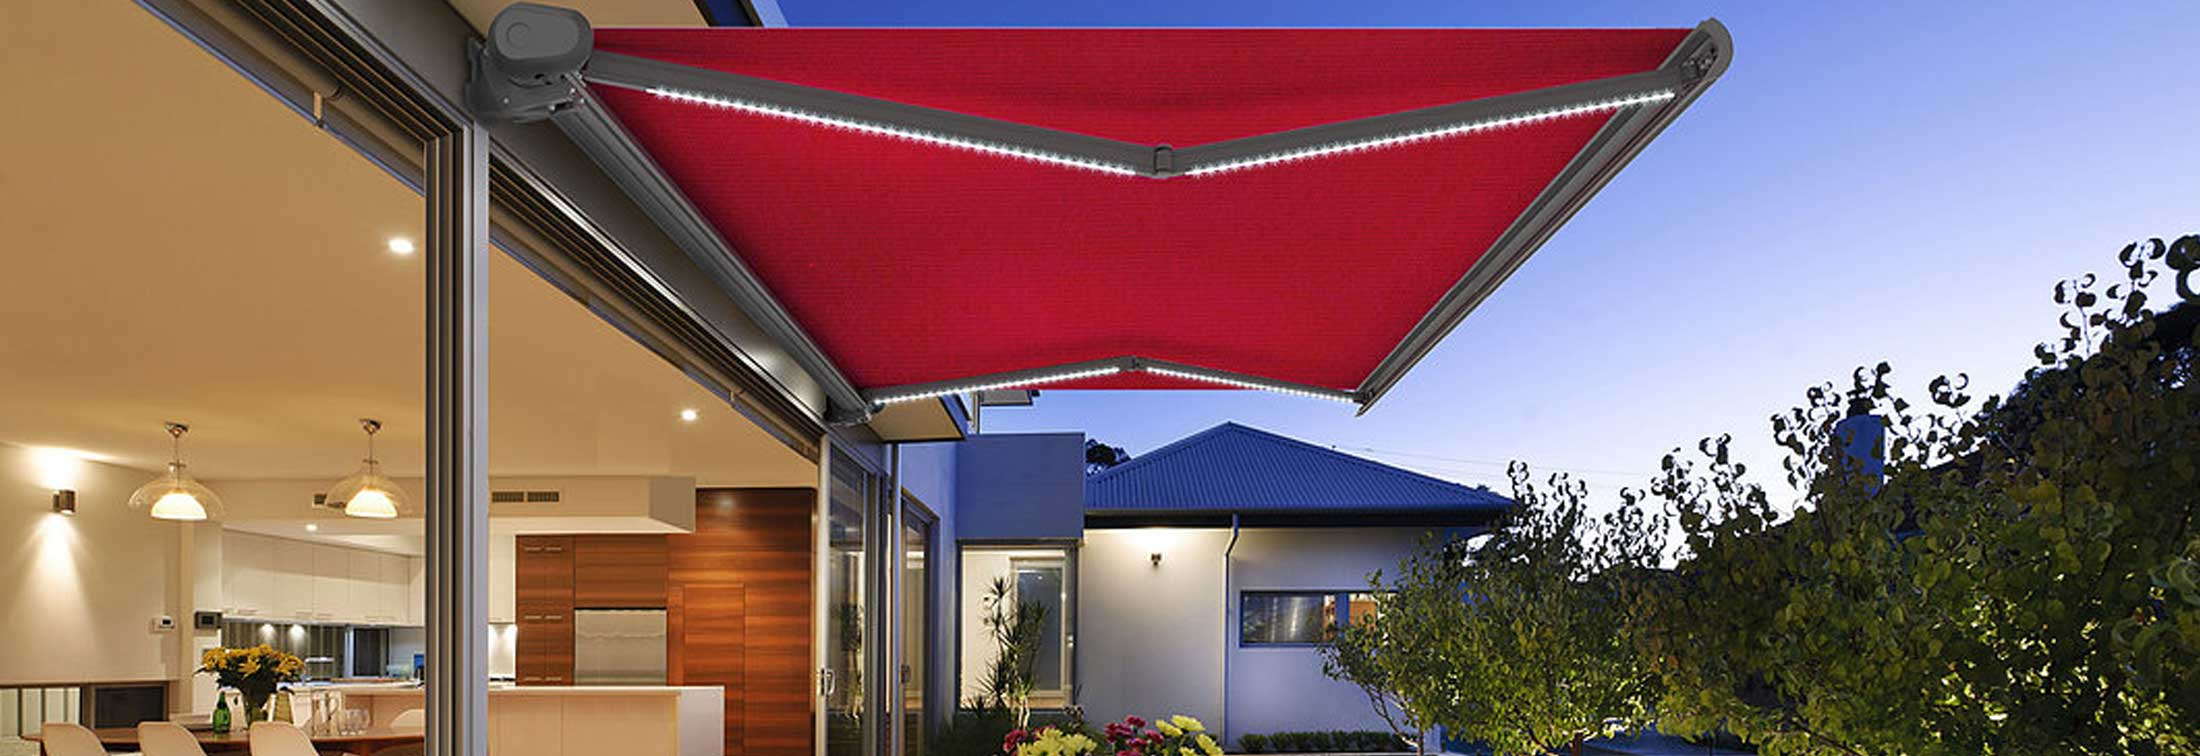 wall mounted awning adelaide